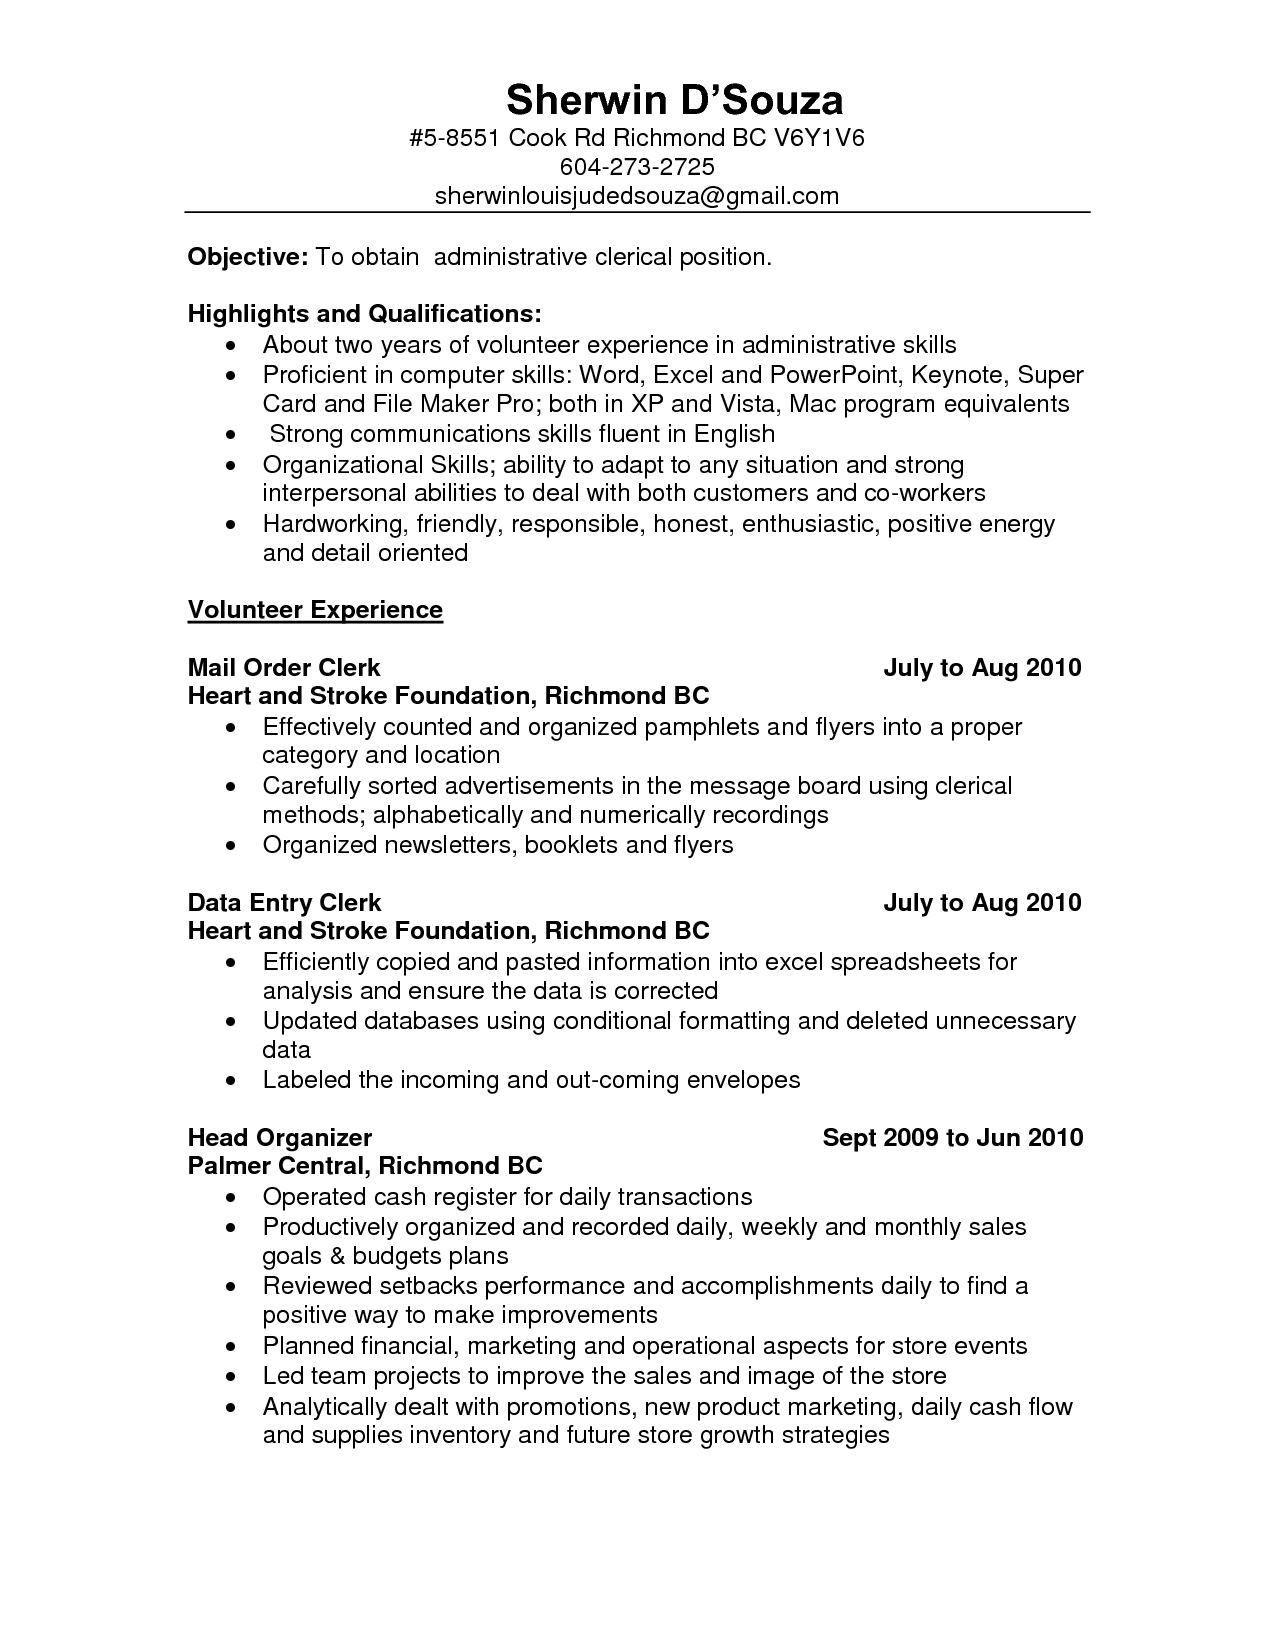 Receptionist Job Description For Resume Deli Clerk Resume Samples